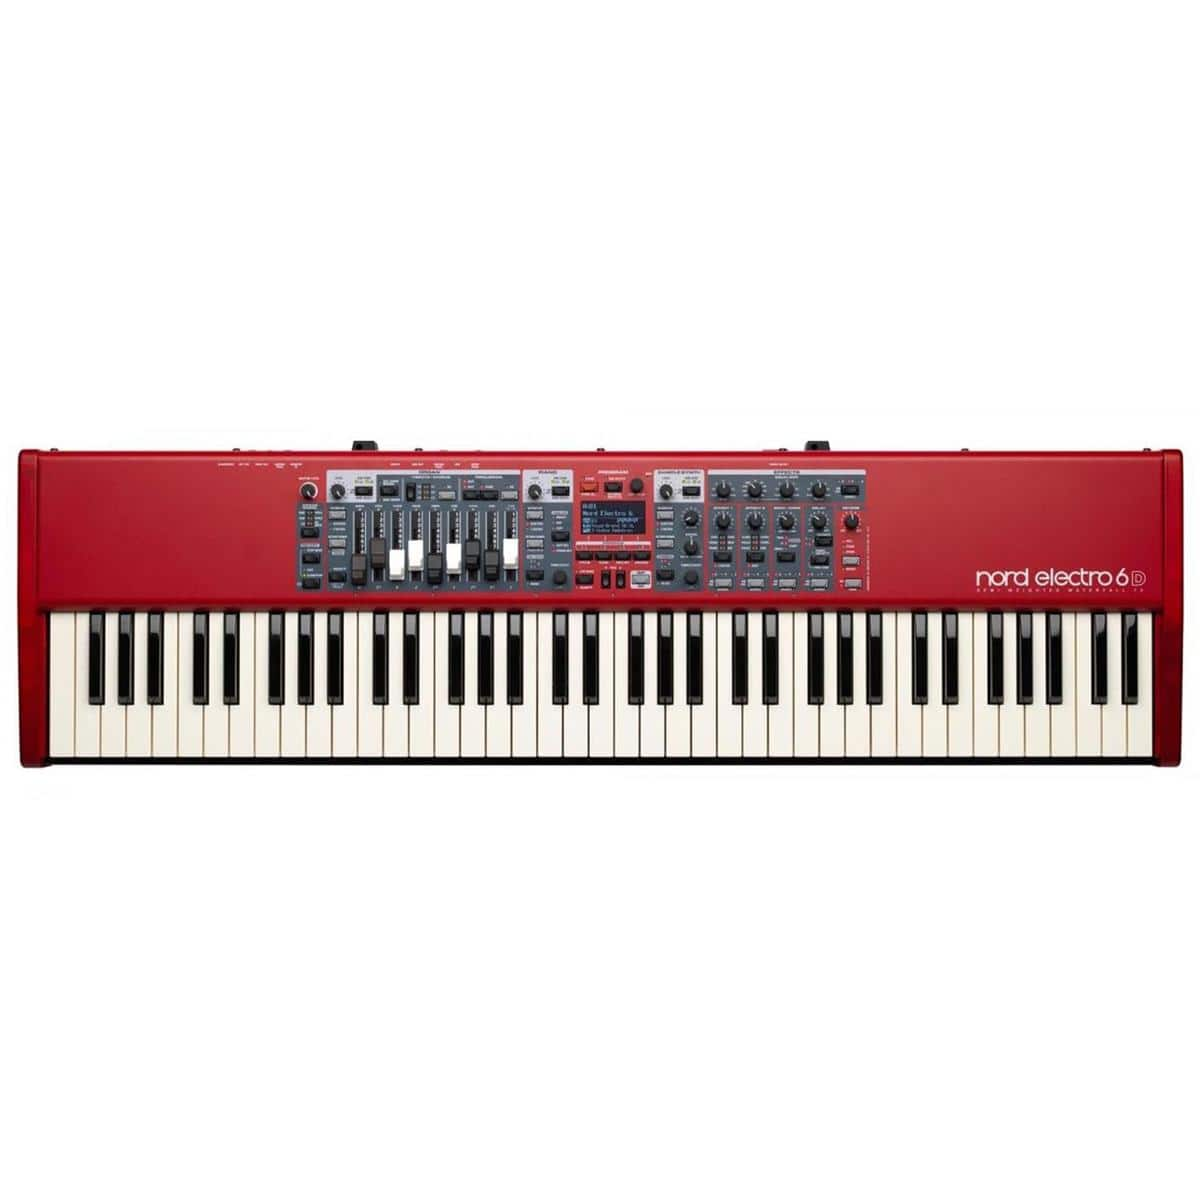 NORD Electro 6D 73-Note Semi-Weighted Waterfall Keyboard $1799 + free s/h